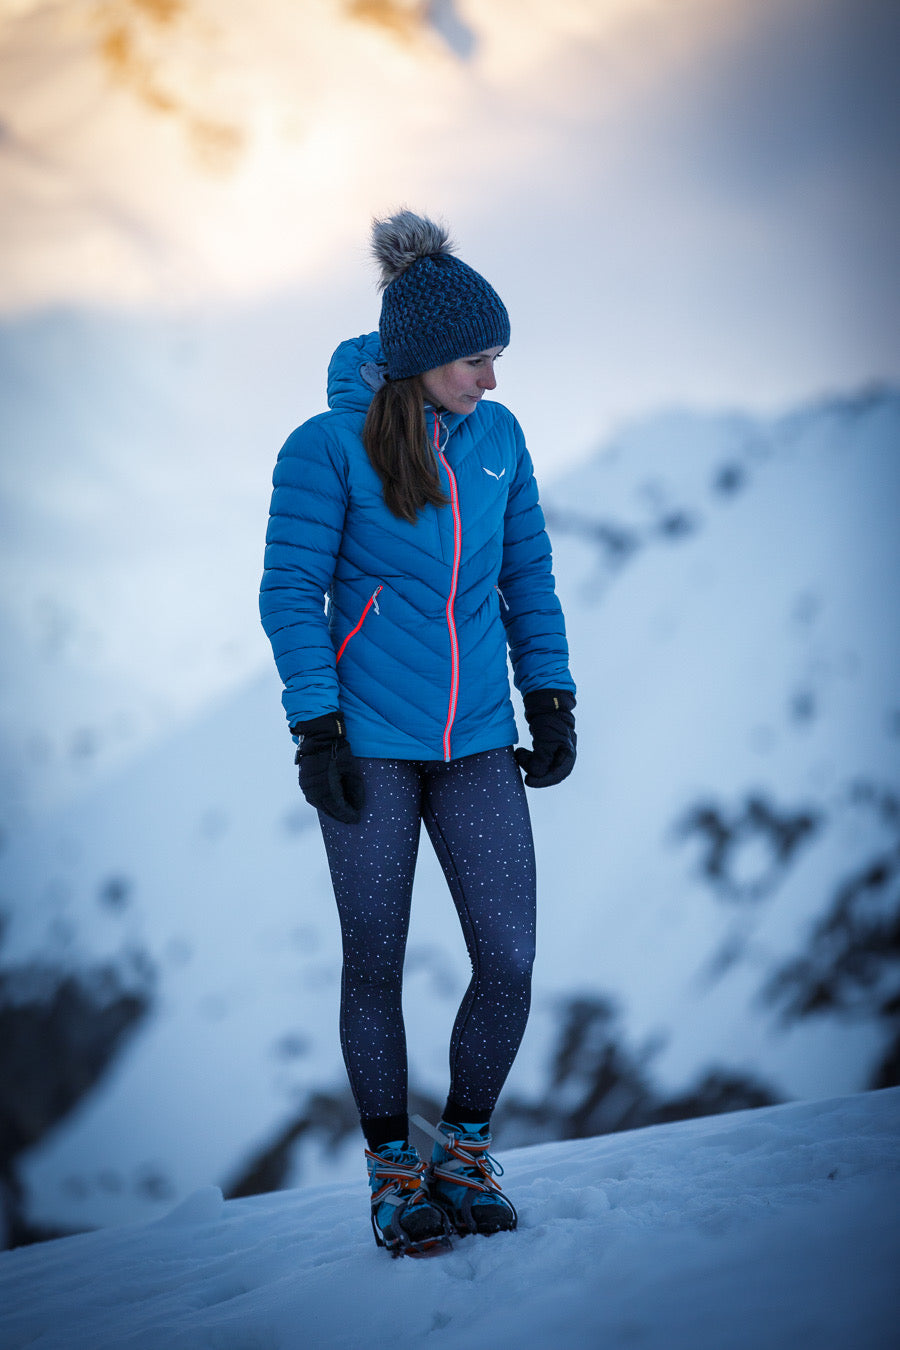 Women's outdoor winter hiking leggings Alpine Princess - for hiking, climbing, trekking, mountains and running, thermal, lined with fleece and water repellent